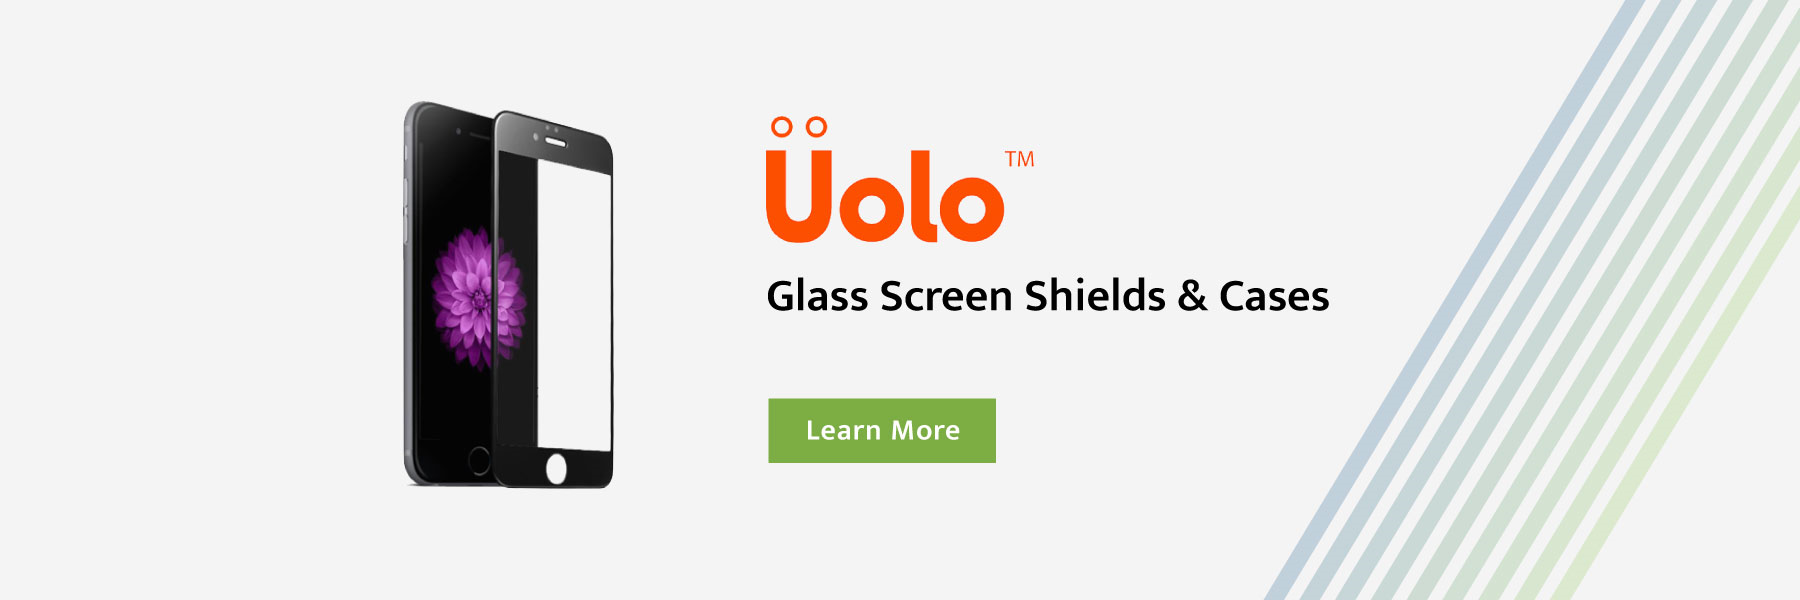 Uolo Glass Screen Shields & Cases